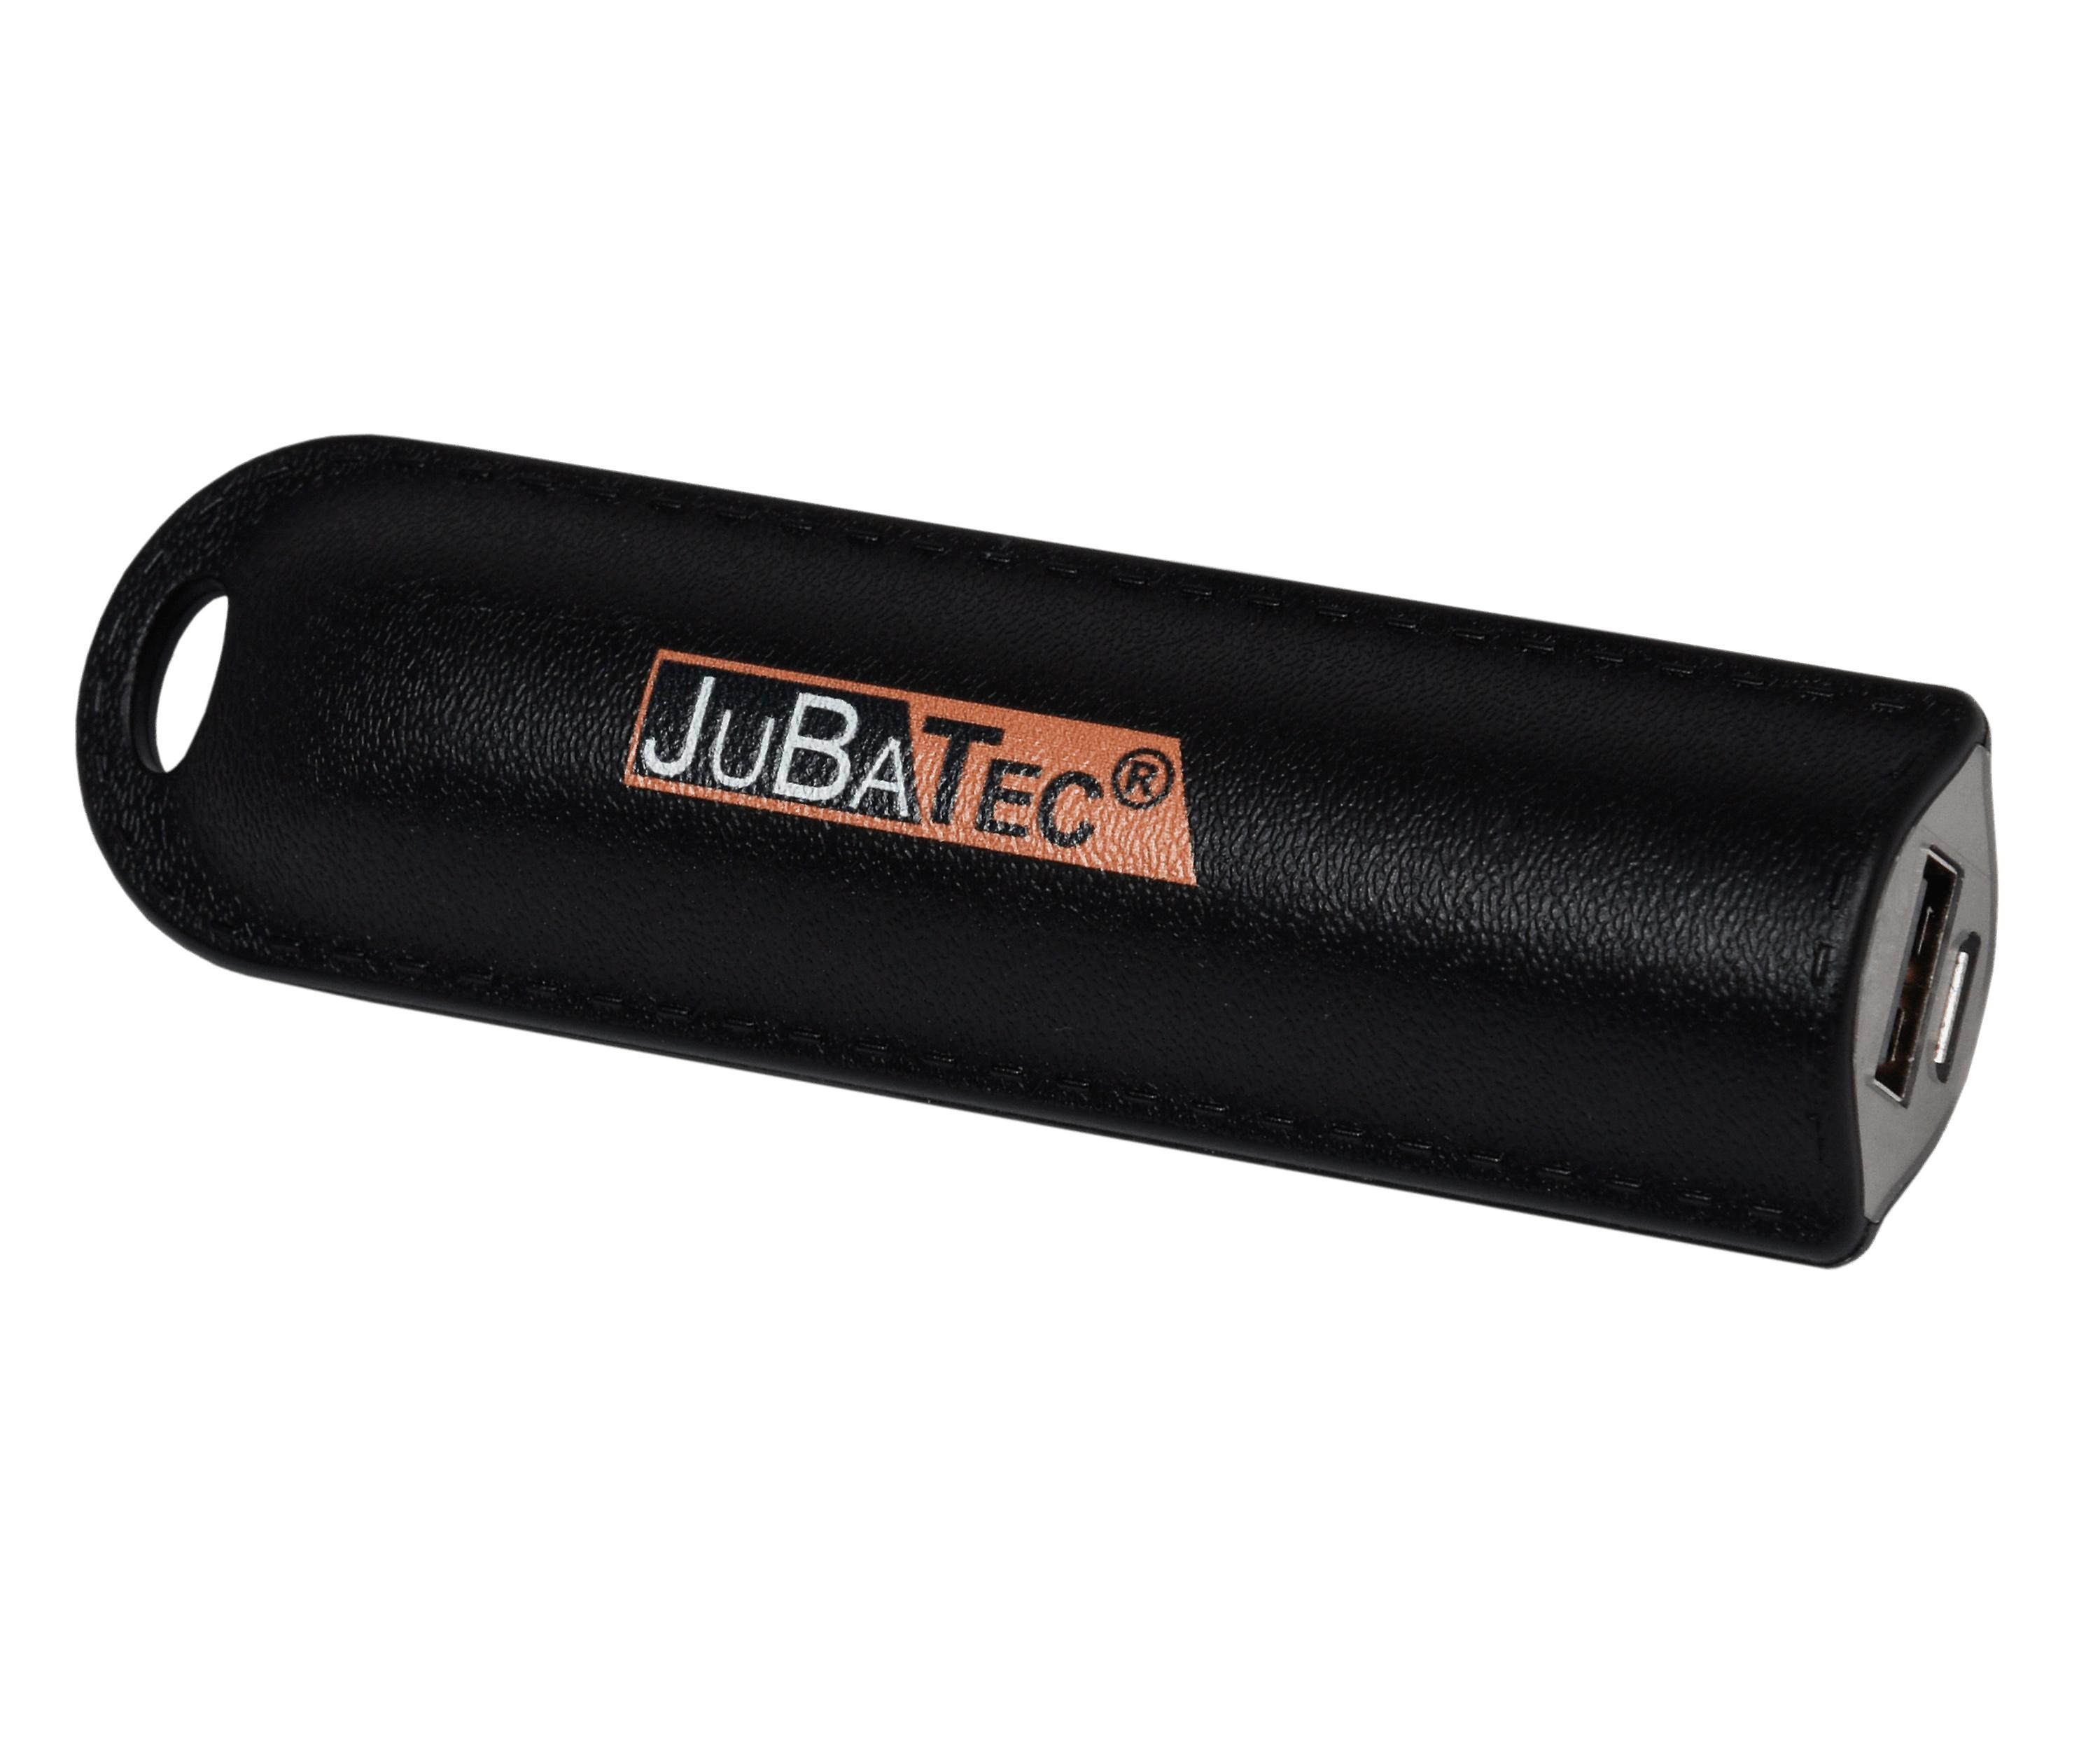 2,600 of mAh power Bank black * leather look